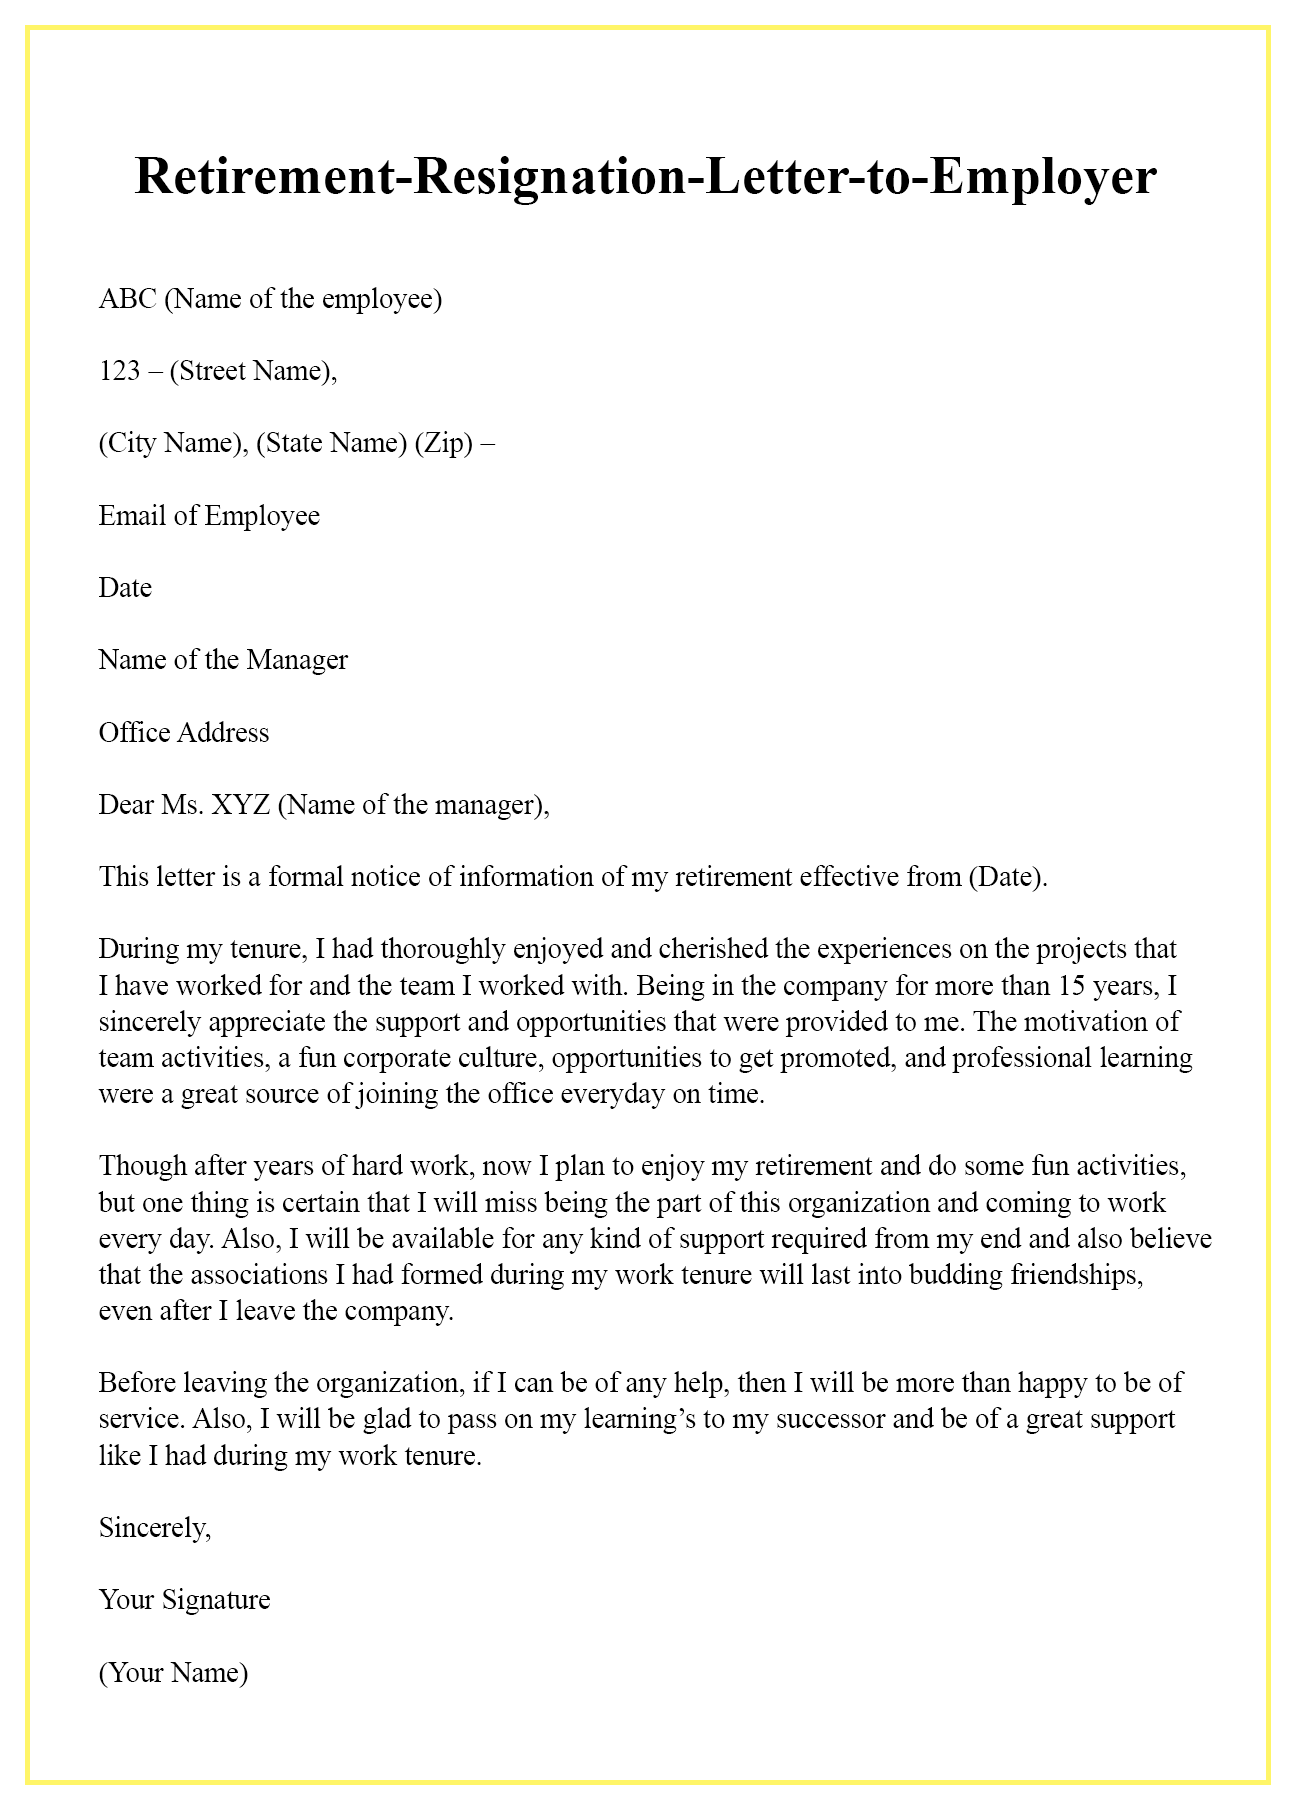 retirement-resignation-letter-to-employer | Best Letter Template